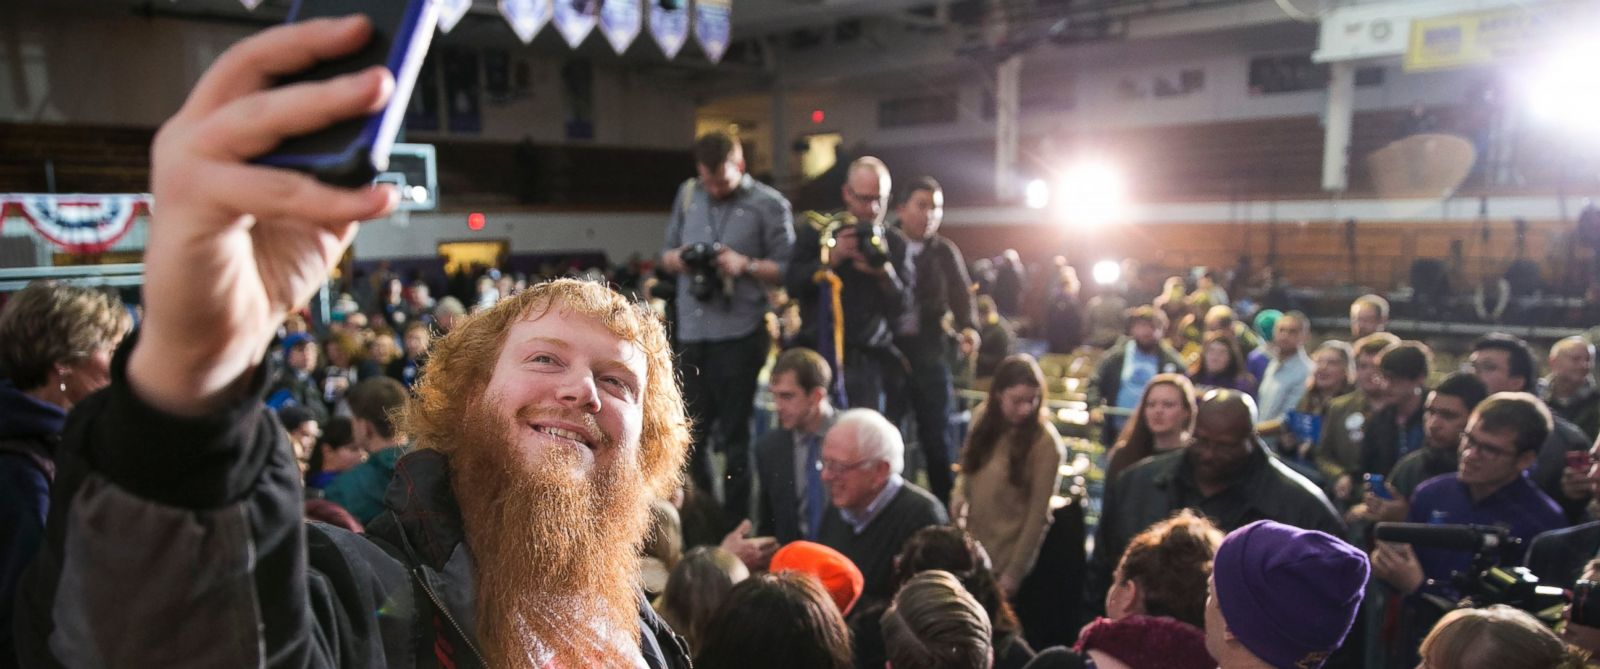 PHOTO: Joshua Sears, of Waterloo, takes a selfie with Democratic presidential candidate Sen. Bernie Sanders in the background after an event at the University of Northern Iowa, in Cedar Falls, Iowa, Jan. 24, 2016.